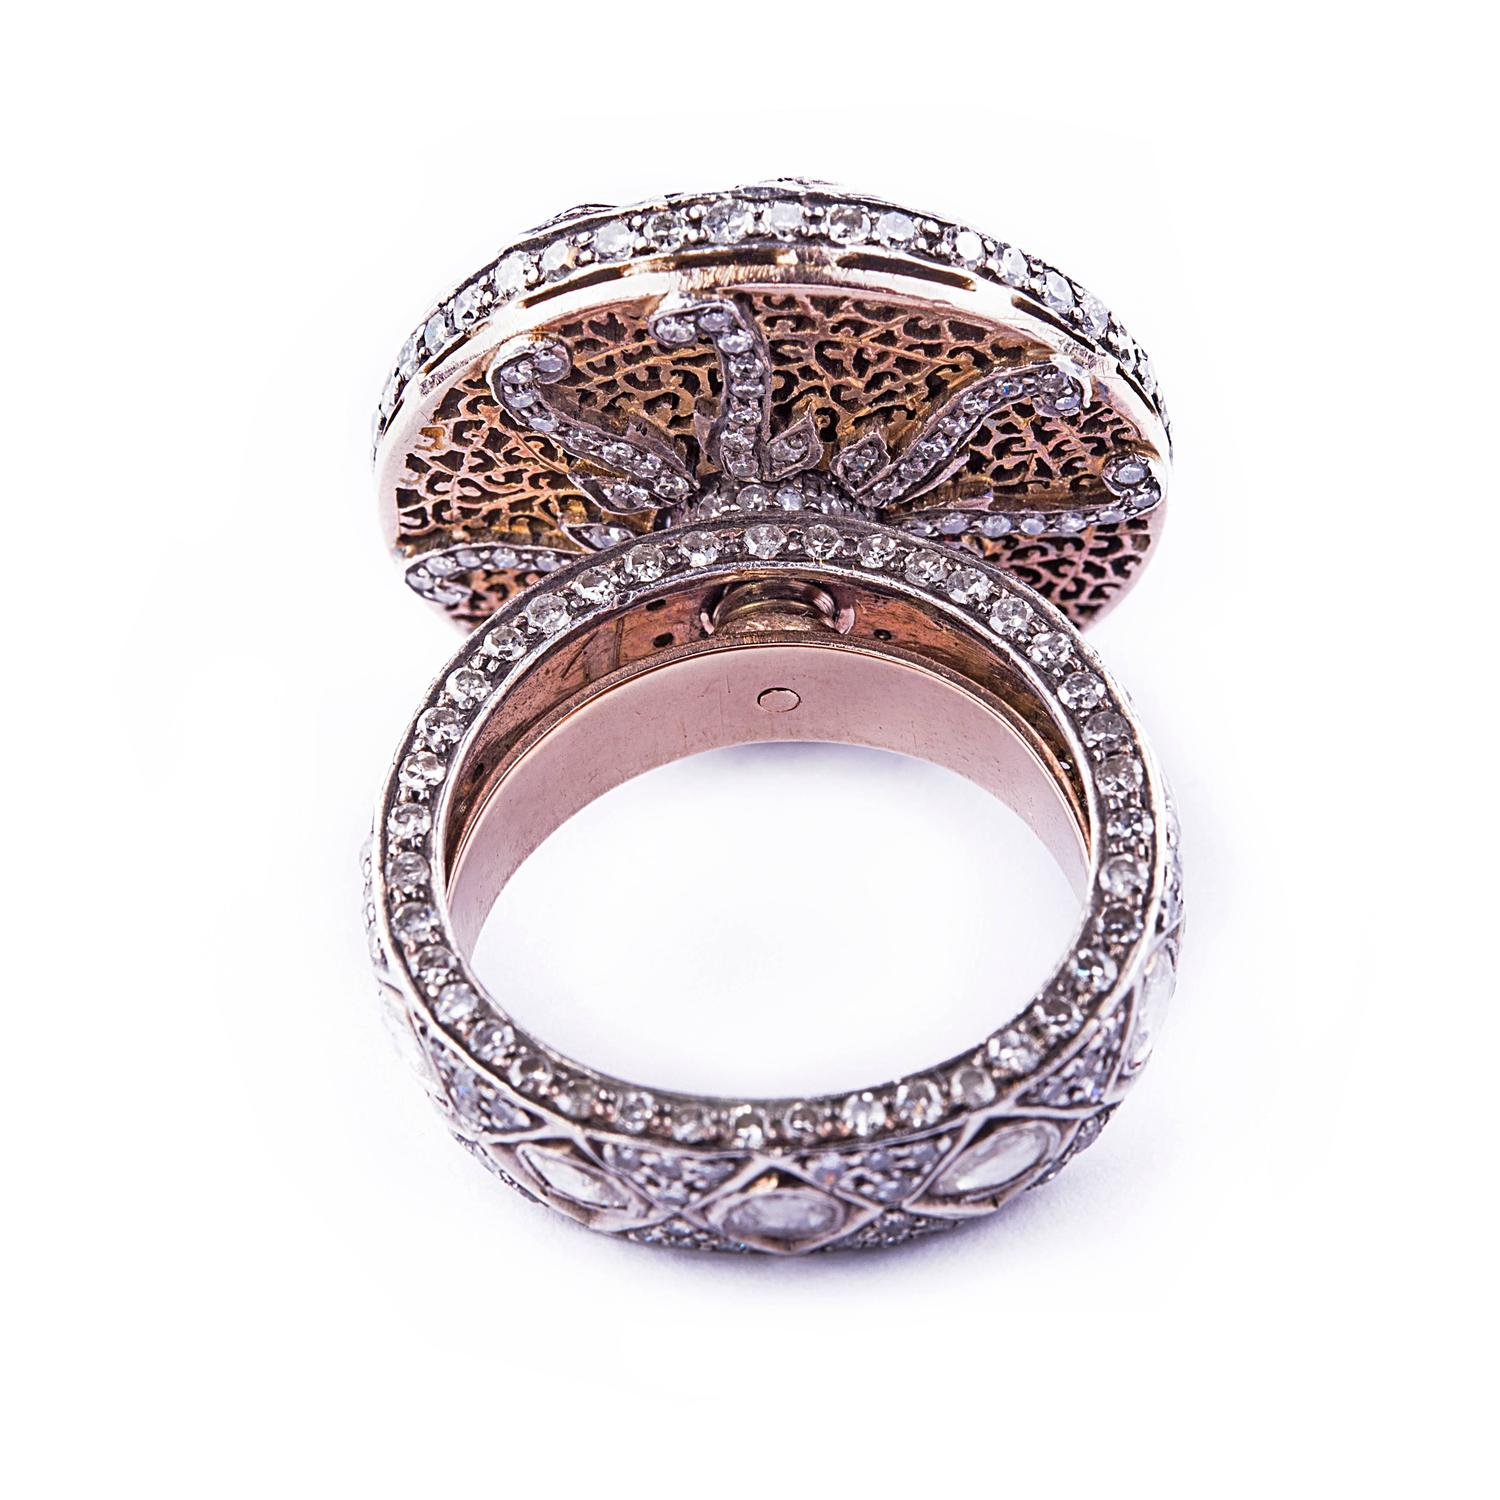 Traditional diamond two color gold wedding ring for sale for Orthodox wedding rings for sale